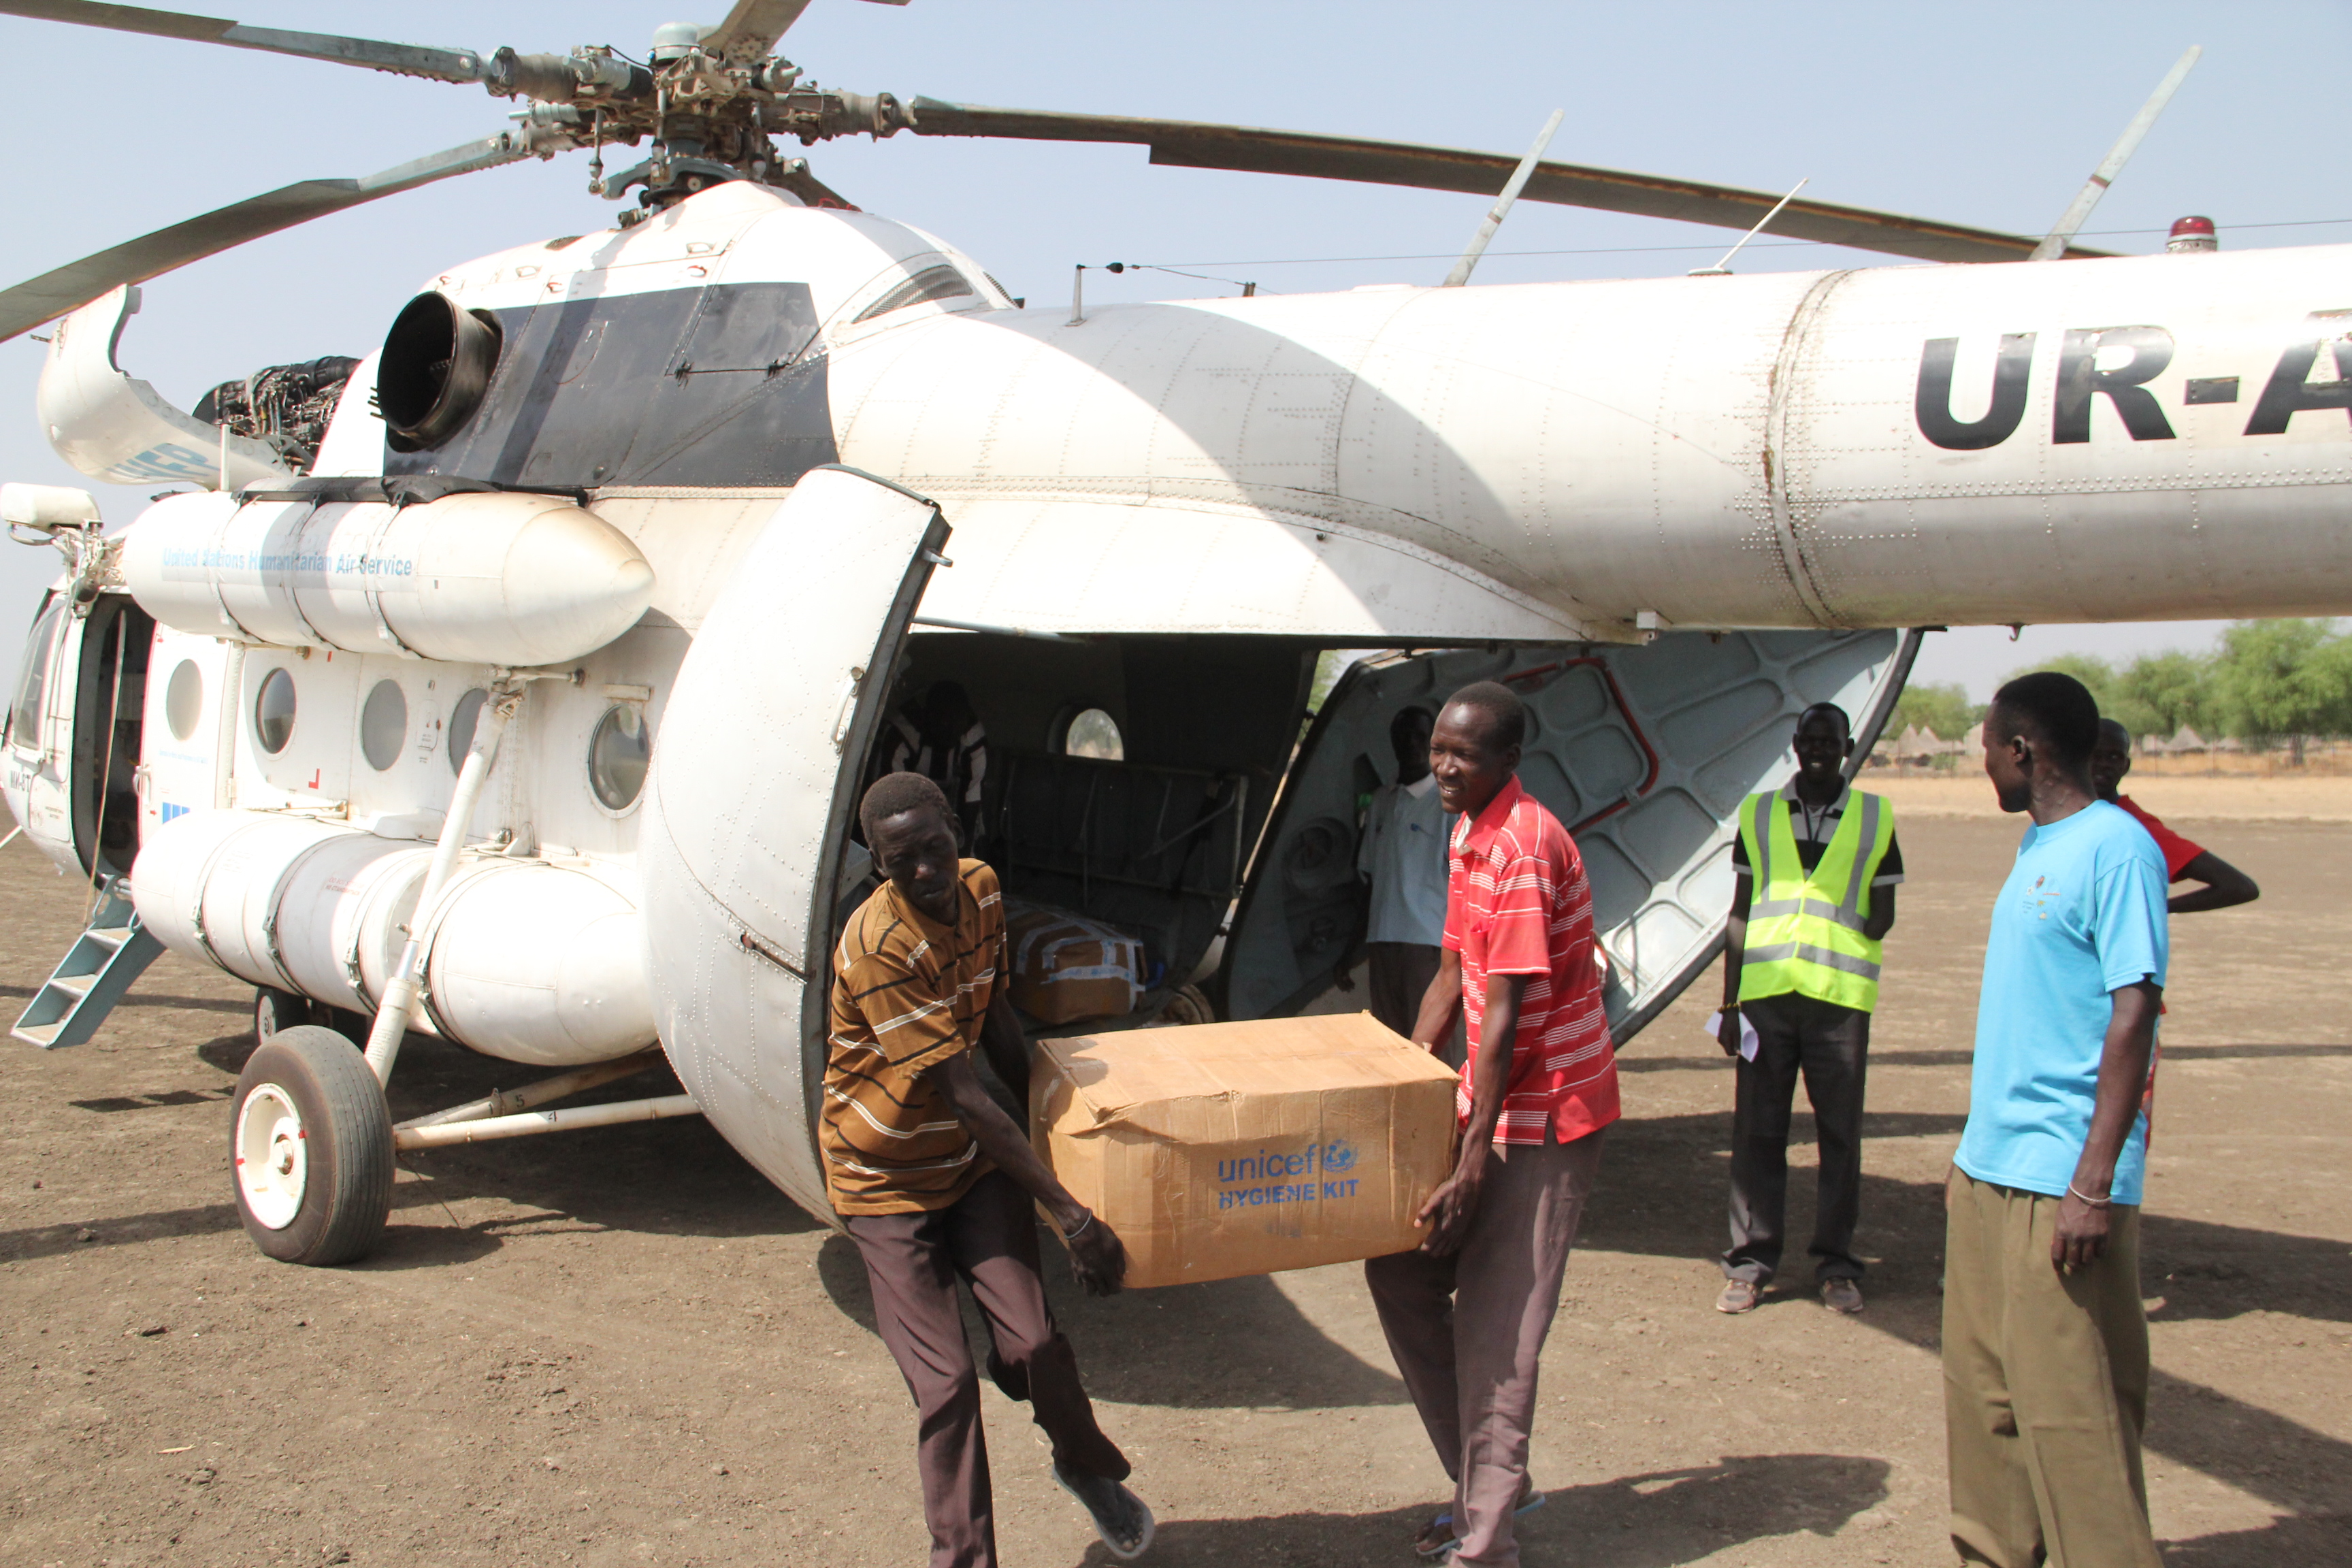 Two of the more than 100 volunteers in Akobo, South Sudan, helping to unload hundreds of tons of life-saving UNICEF supplies and clear land for emergency air drops.